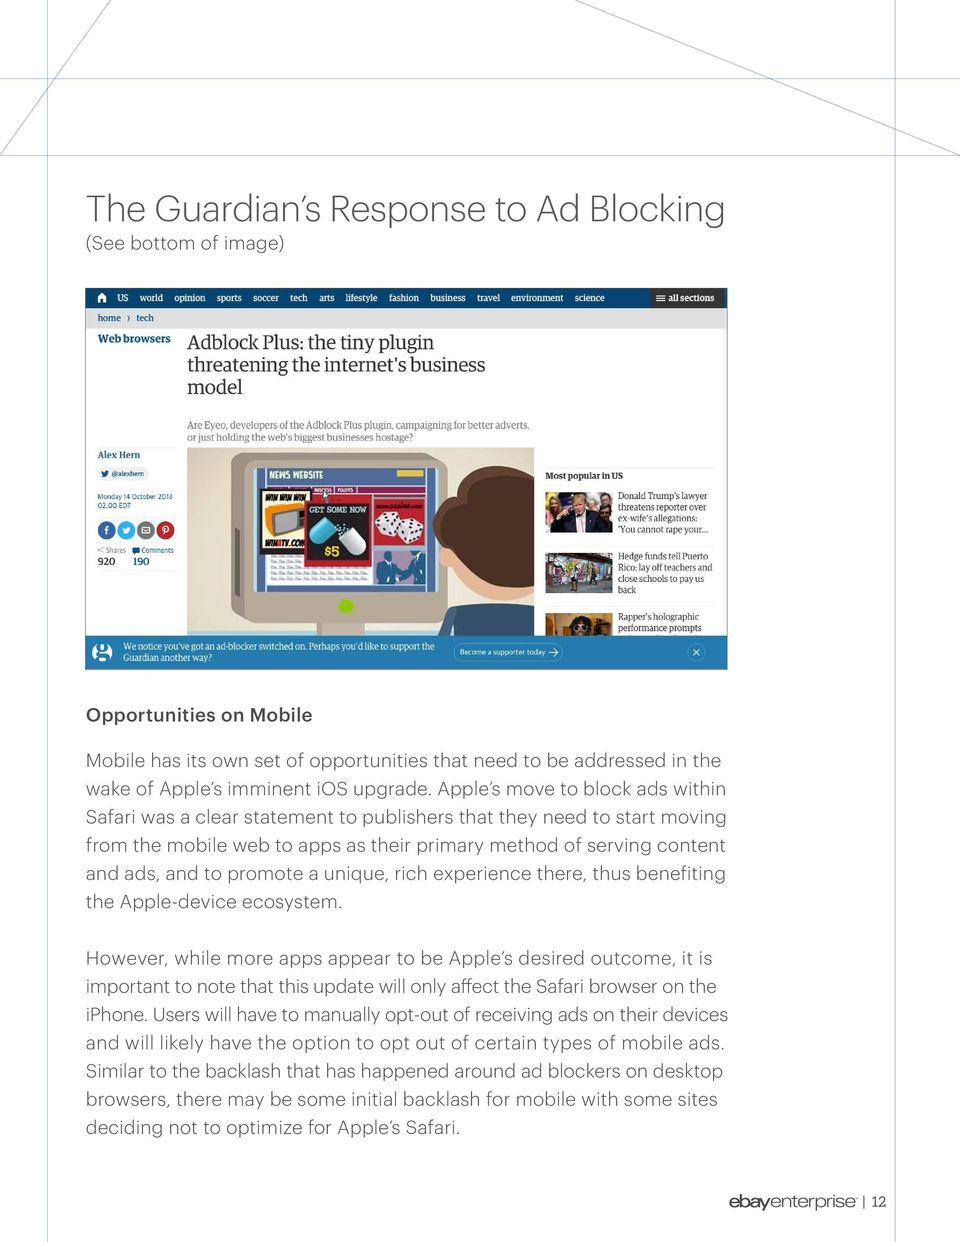 Ad Blocker Software: The End of Digital Advertising or the